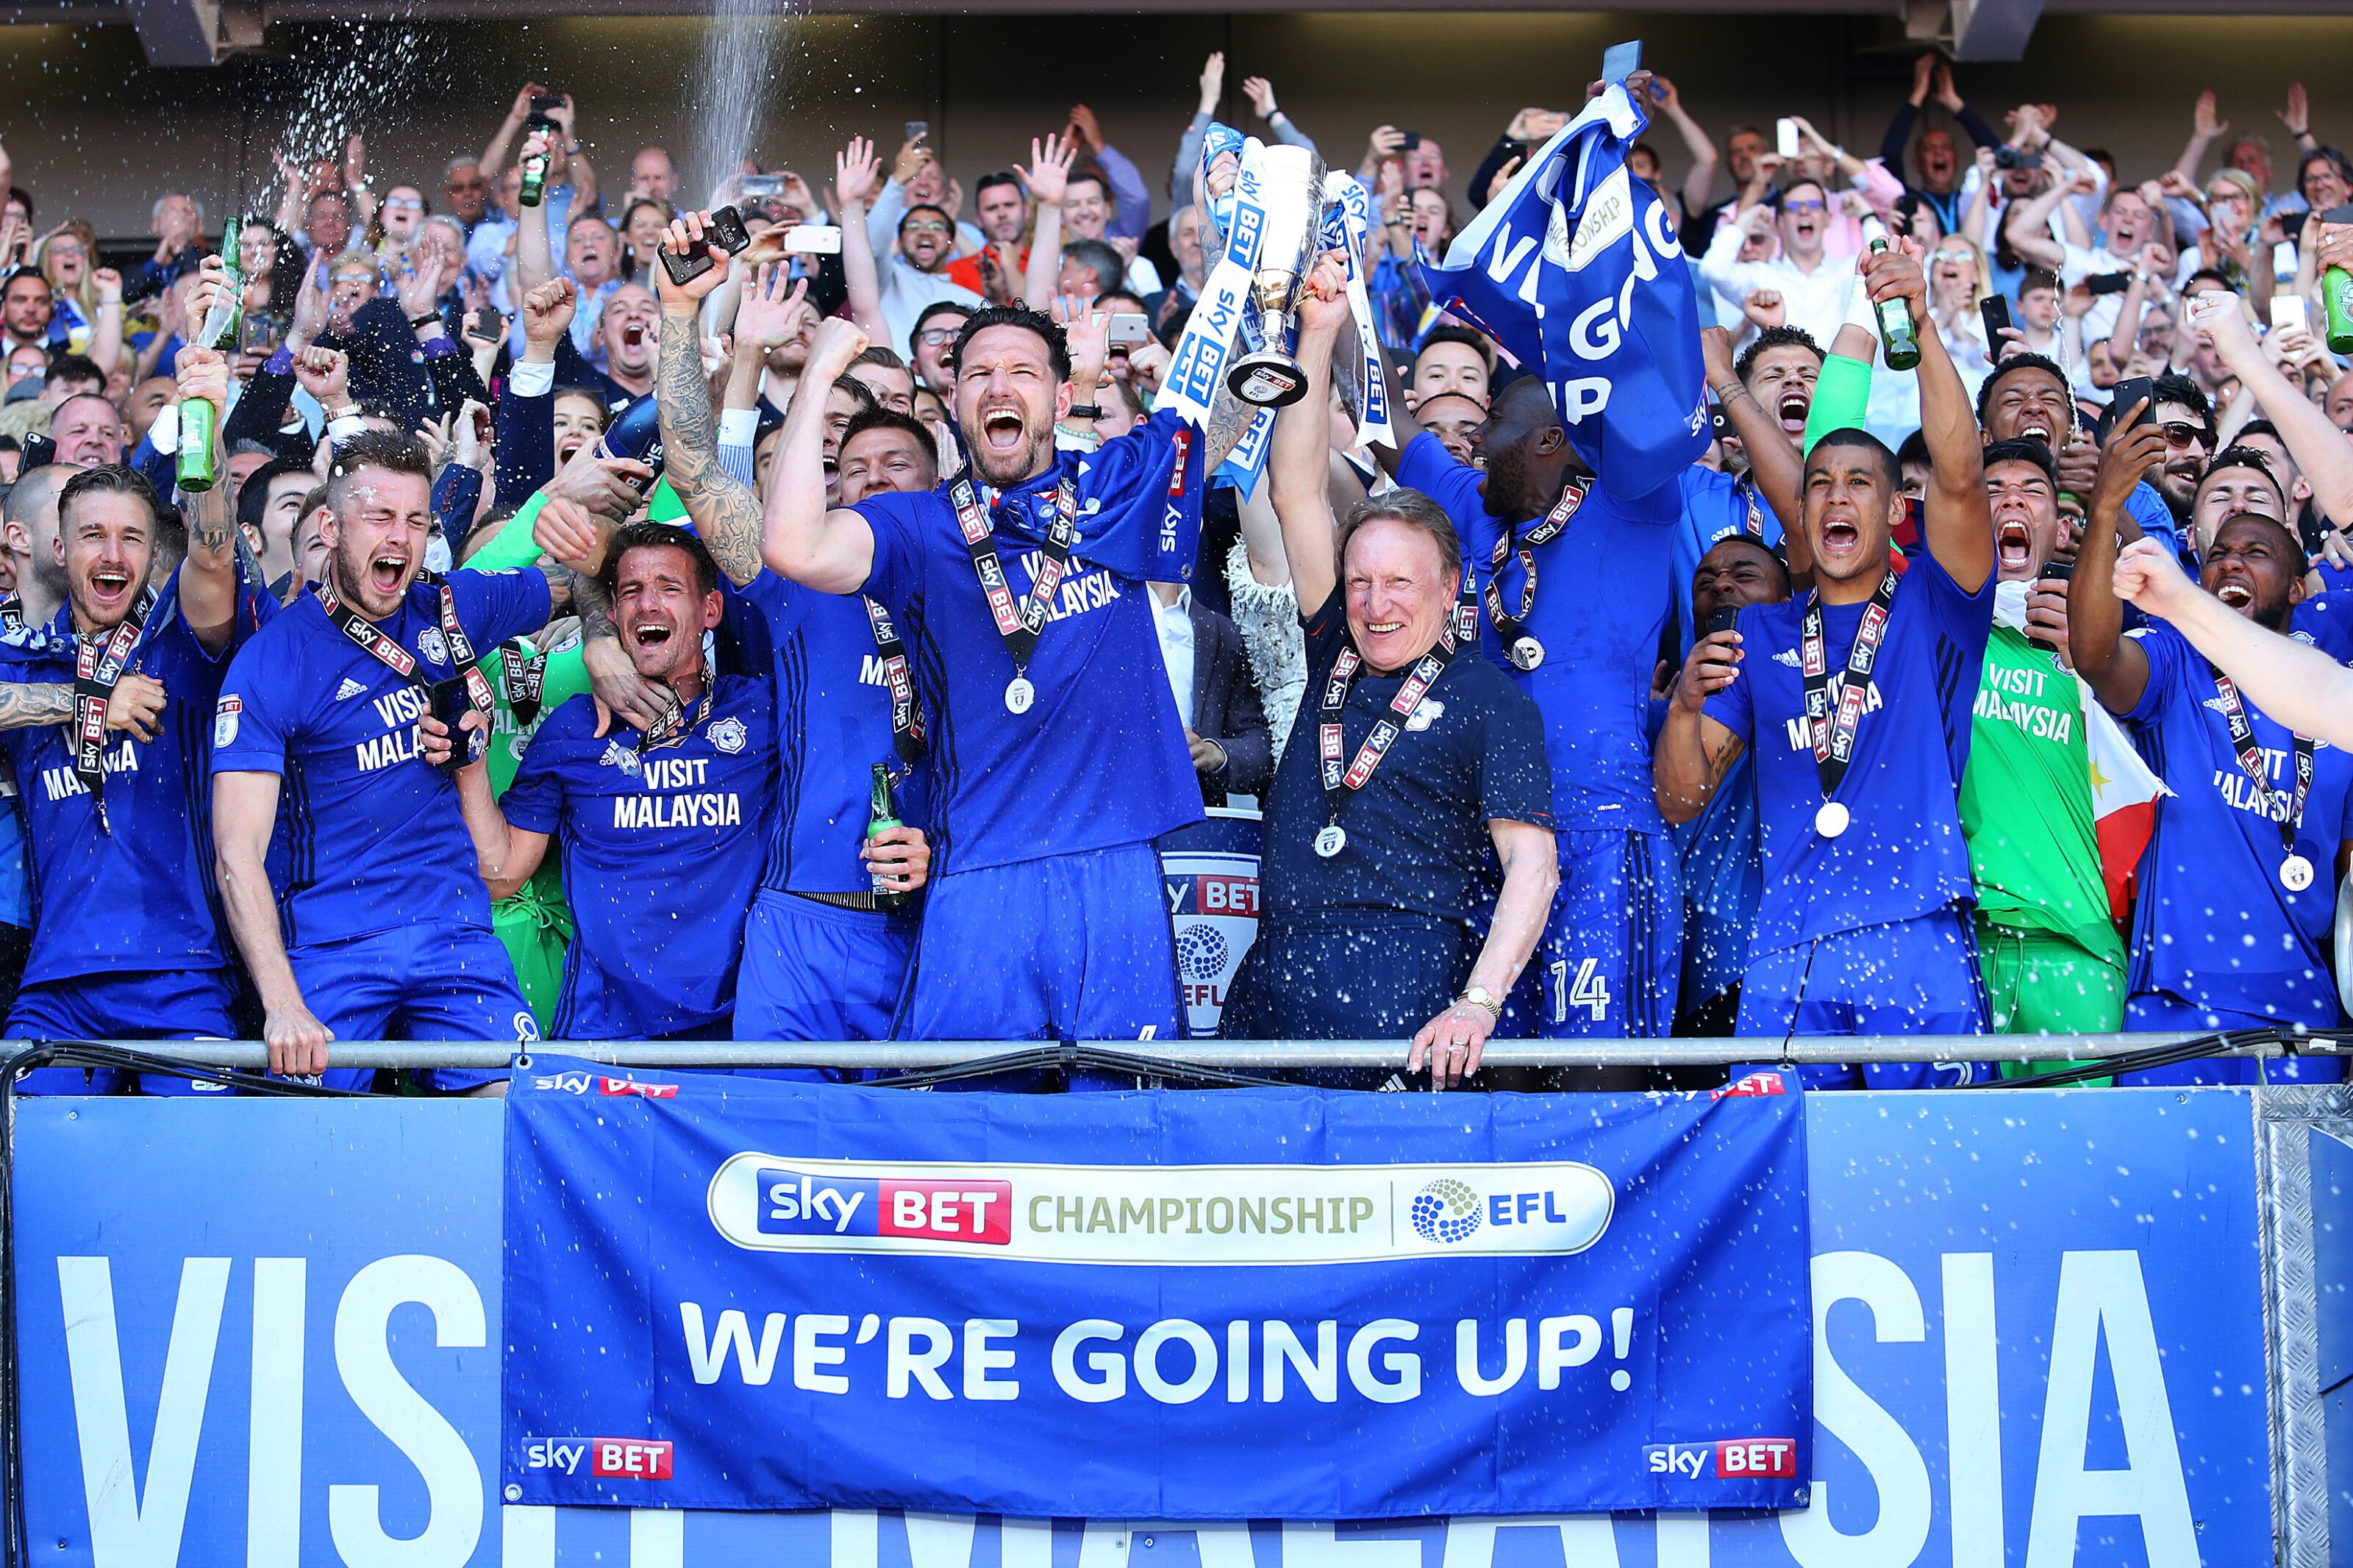 CARDIFF, WALES - MAY 06: Sean Morrison of Cardiff City and Cardiff City manager Neil Warnock lift the trophy after being automatically promoted to the Premier League after the final whistle of the Sky Bet Championship match between Cardiff City and Reading at The Cardiff City Stadium on May 06, 2018 in Cardiff, Wales. (Photo by Athena Pictures/Getty Images)